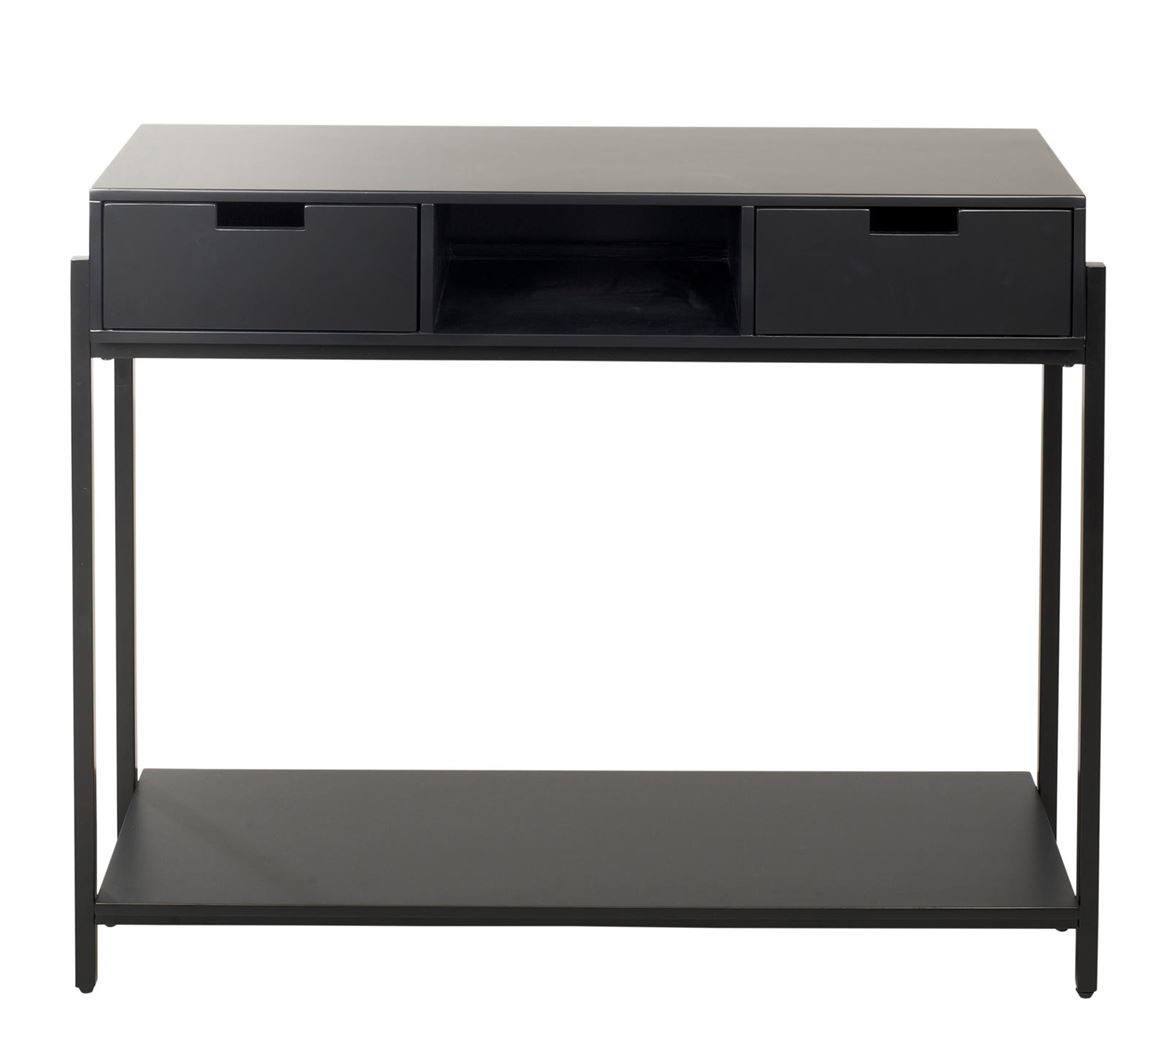 MATEO Table murale noir H 80 x Larg. 32 x Long. 100 cm_mateo-table-murale-noir-h-80-x-larg--32-x-long--100-cm